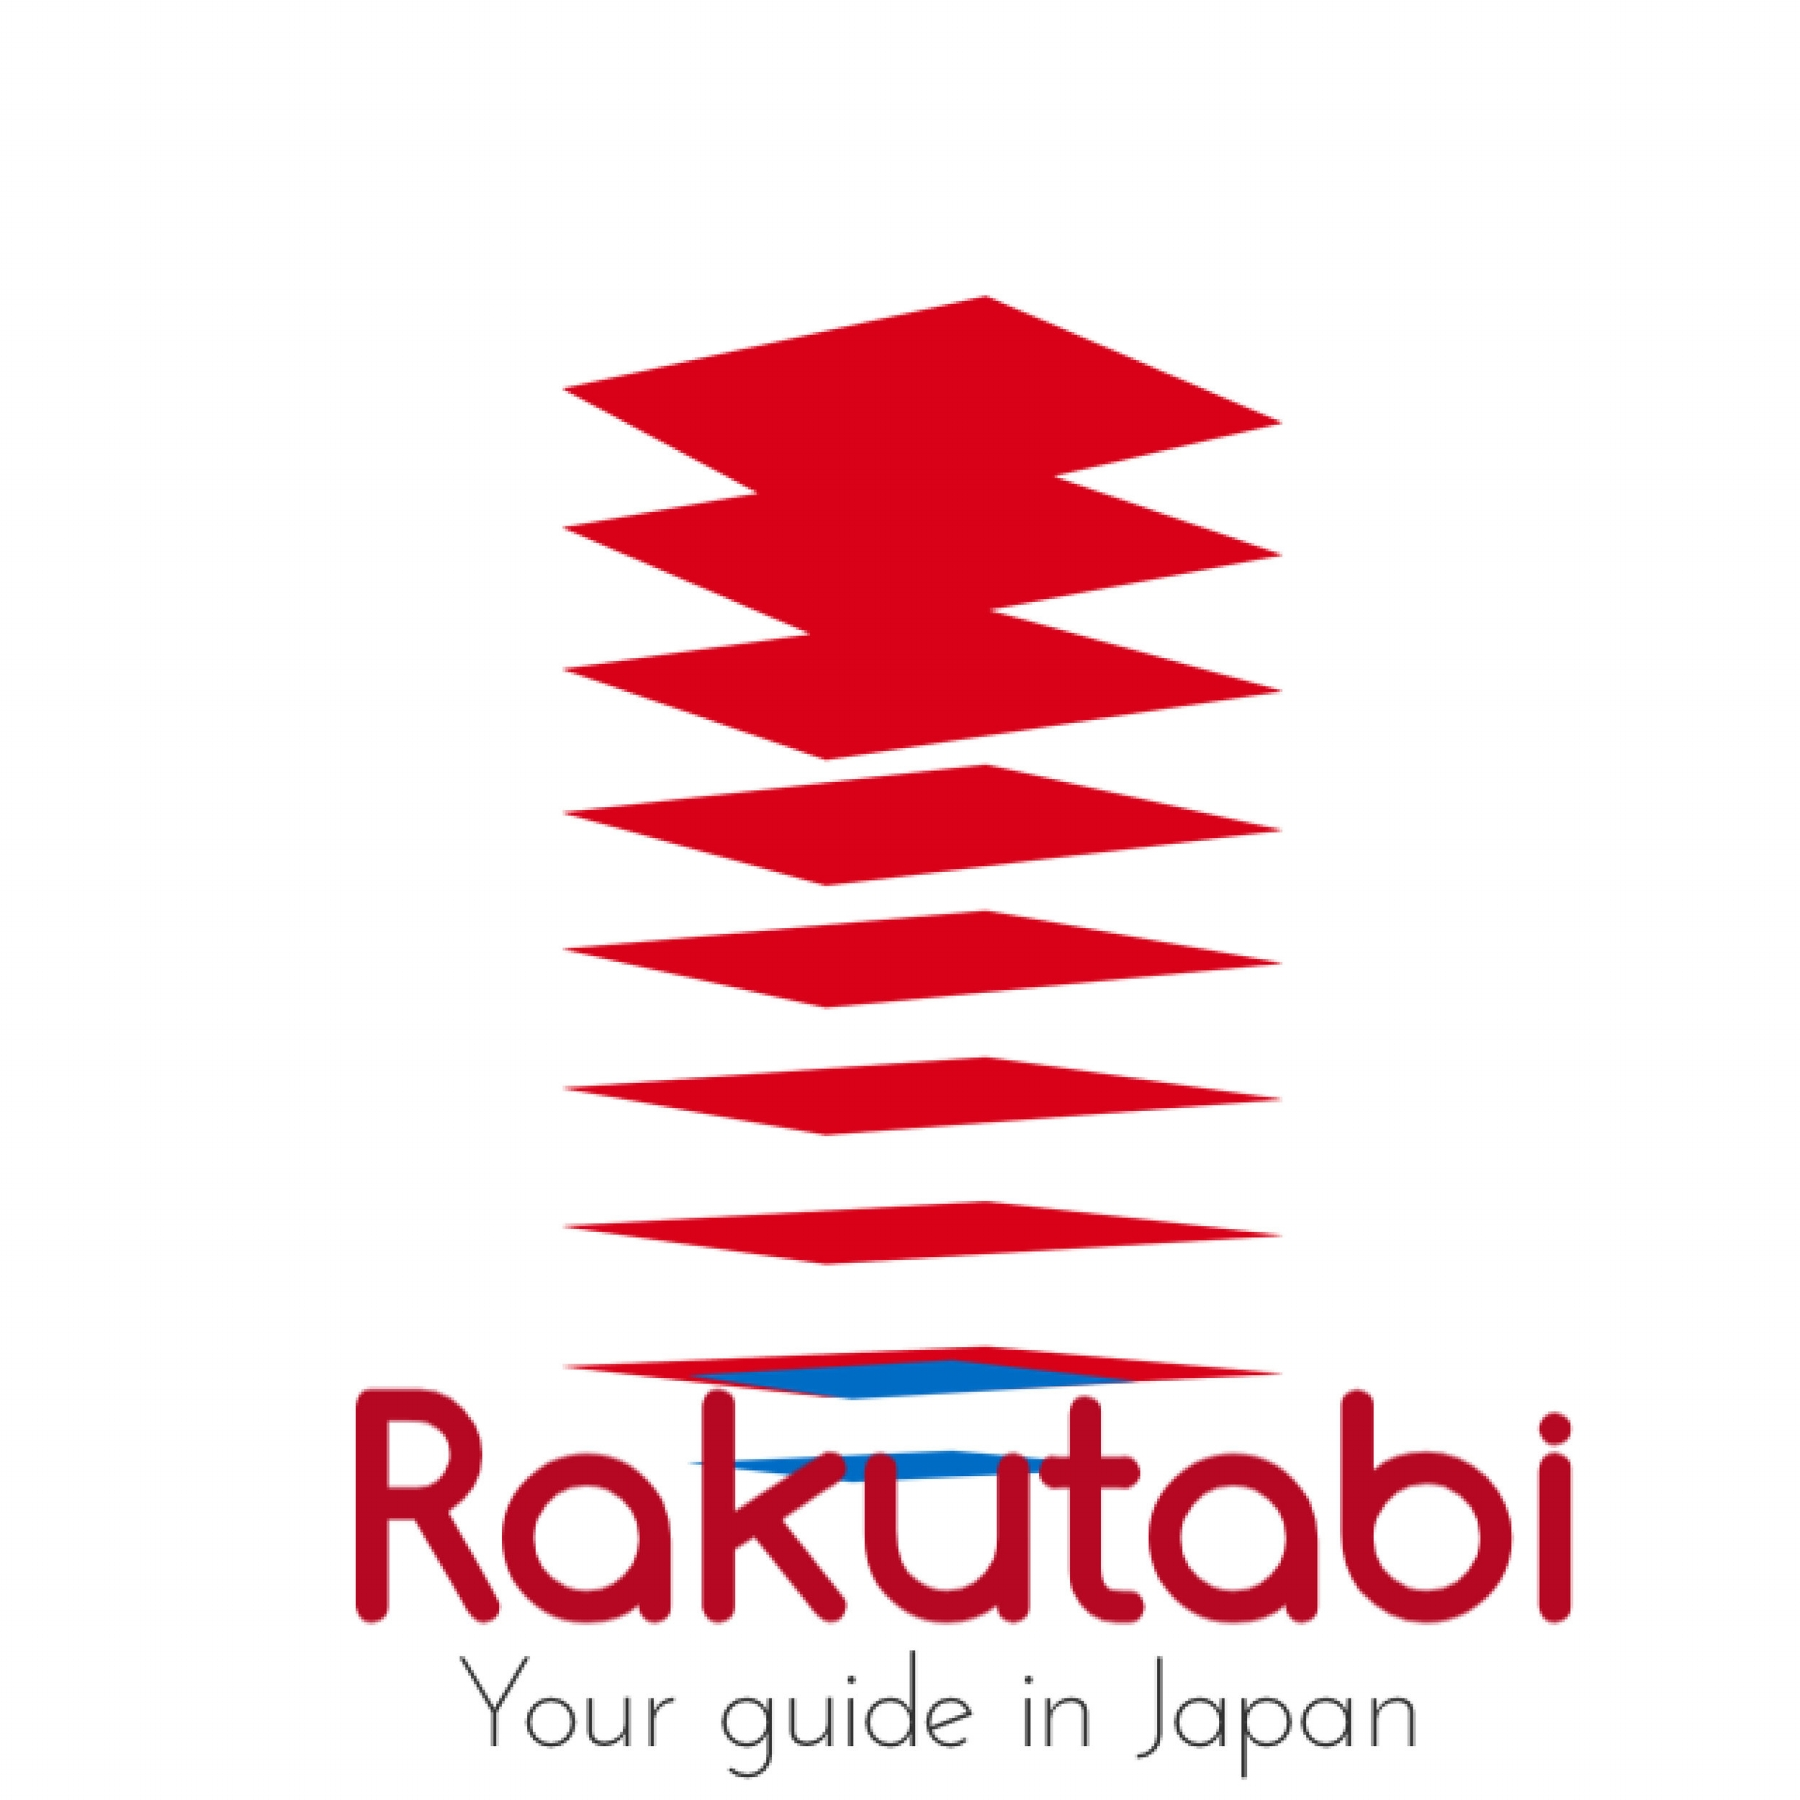 Travel serenely in Japan through Rakutabi private tour guides. They will accompany you for a first or umpteenth trip alone (e) or more, to discover more inevitable or unknown places.